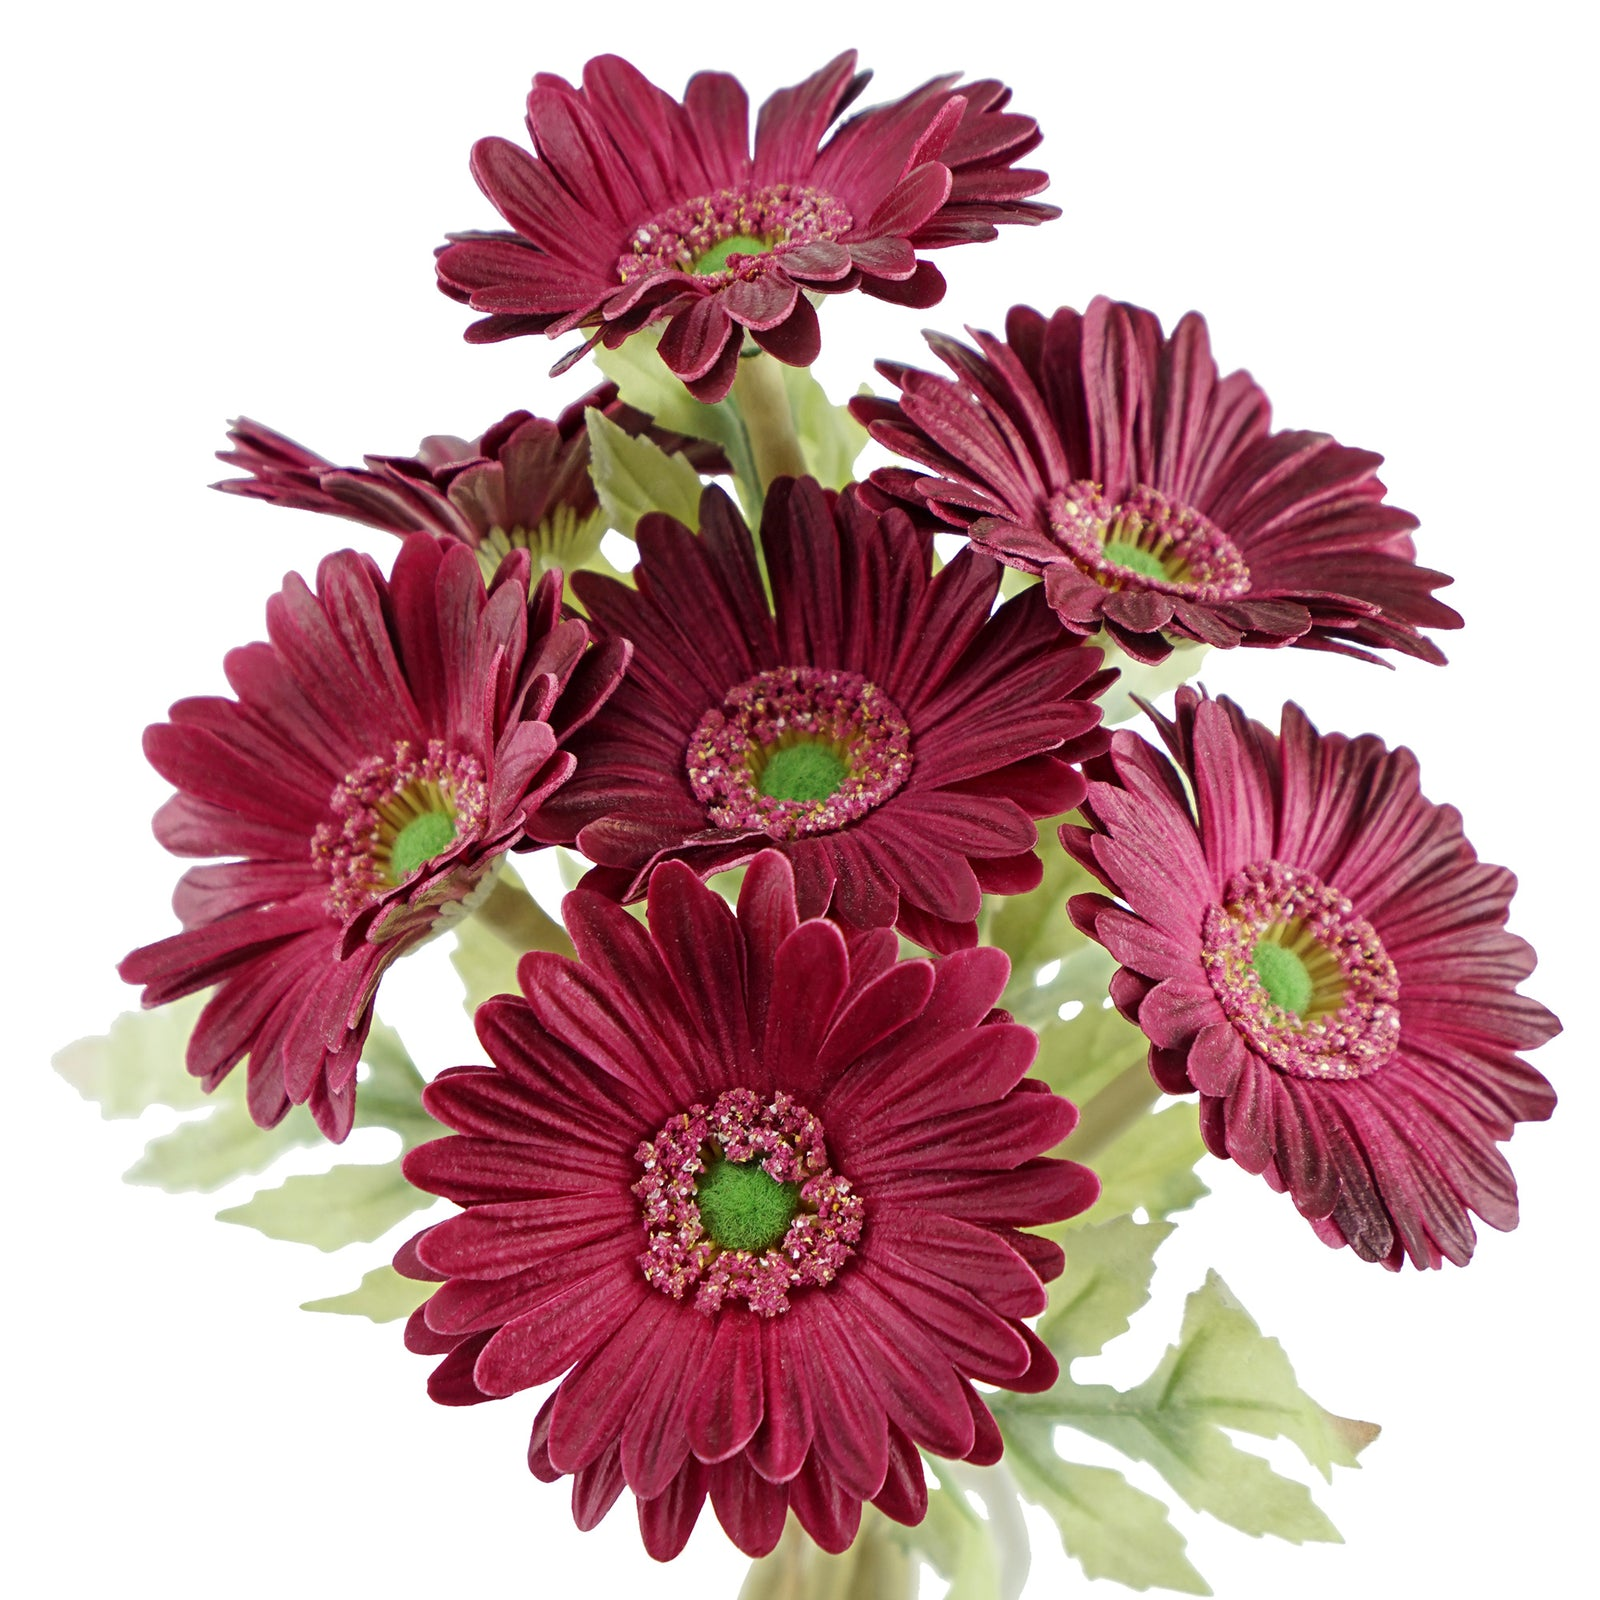 FiveSeasonStuff 7 Stems of Artificial Real Touch Gerbera Flowers & Bouquet, for Home Décor